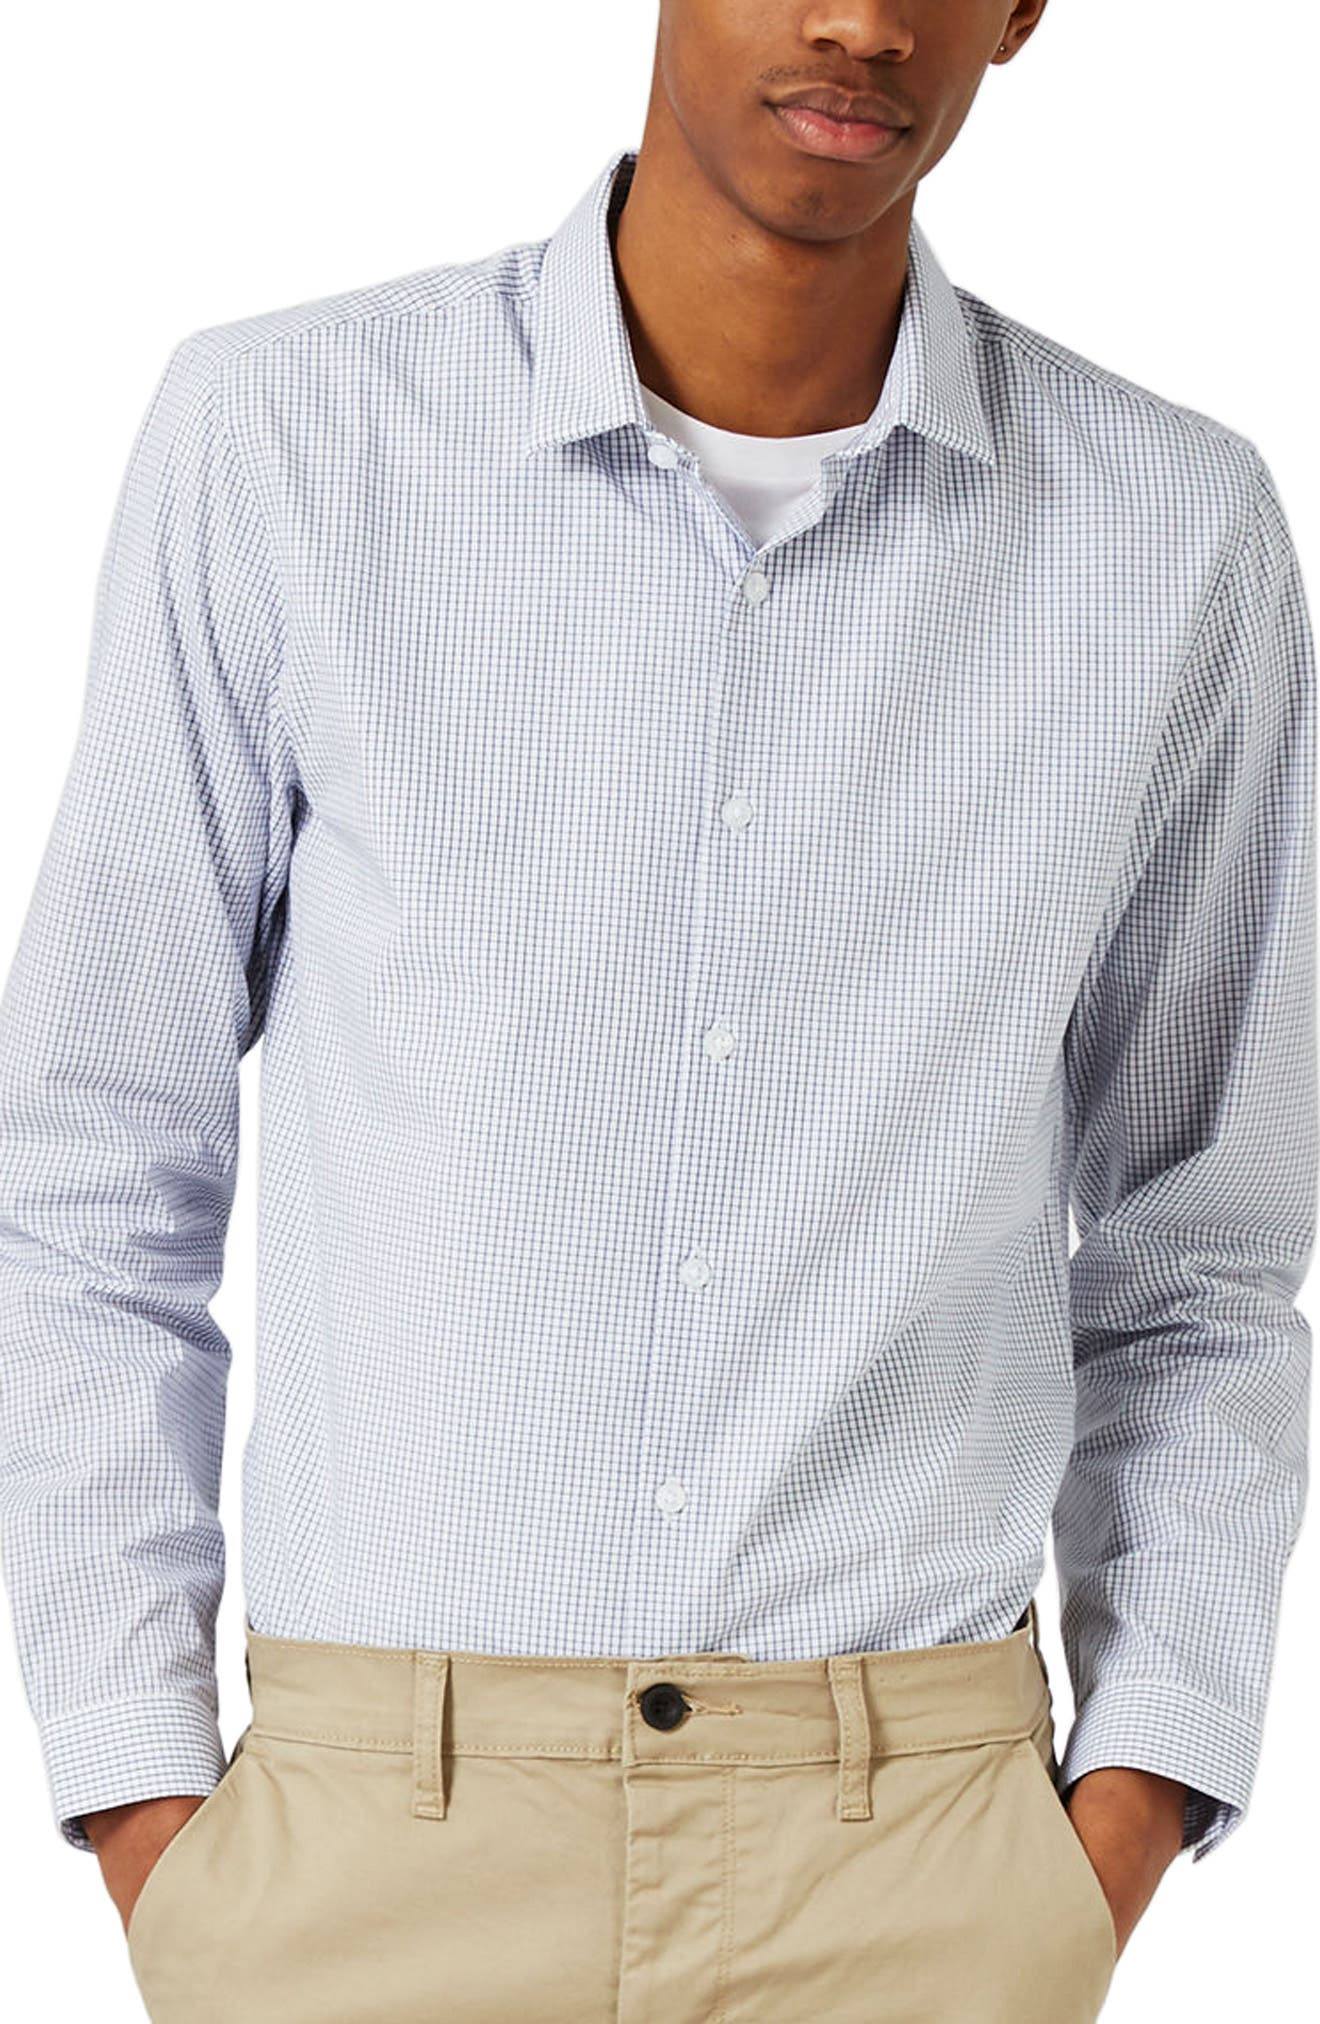 Alternate Image 2  - Topman Slim Fit Grid Check Dress Shirt